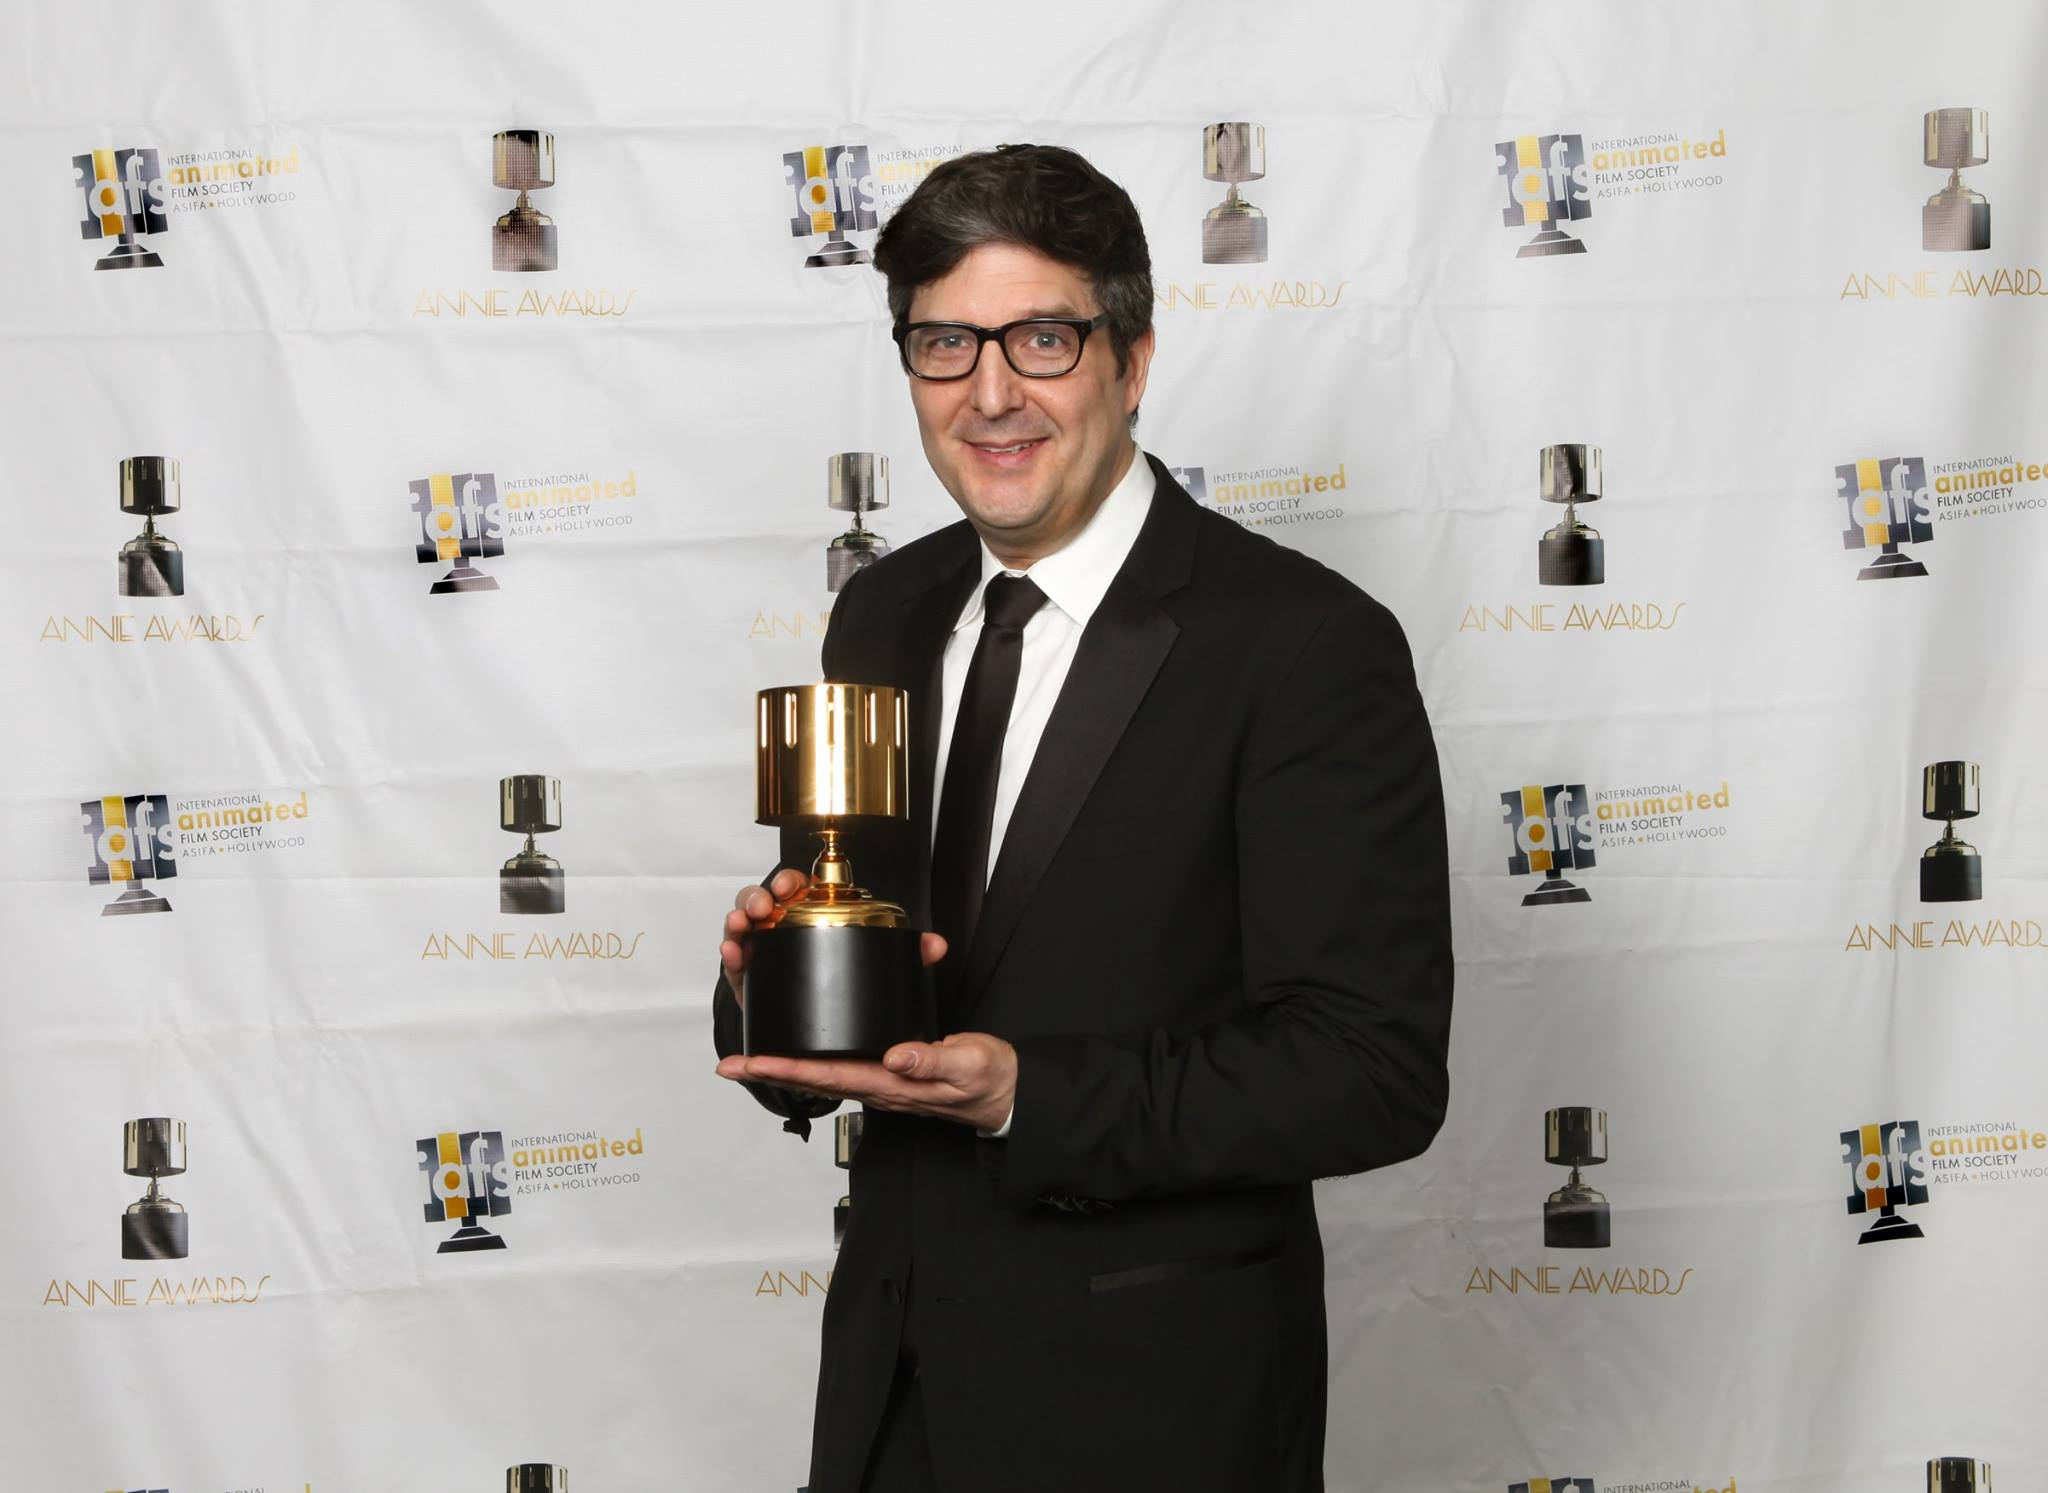 The 44th Annie Awards